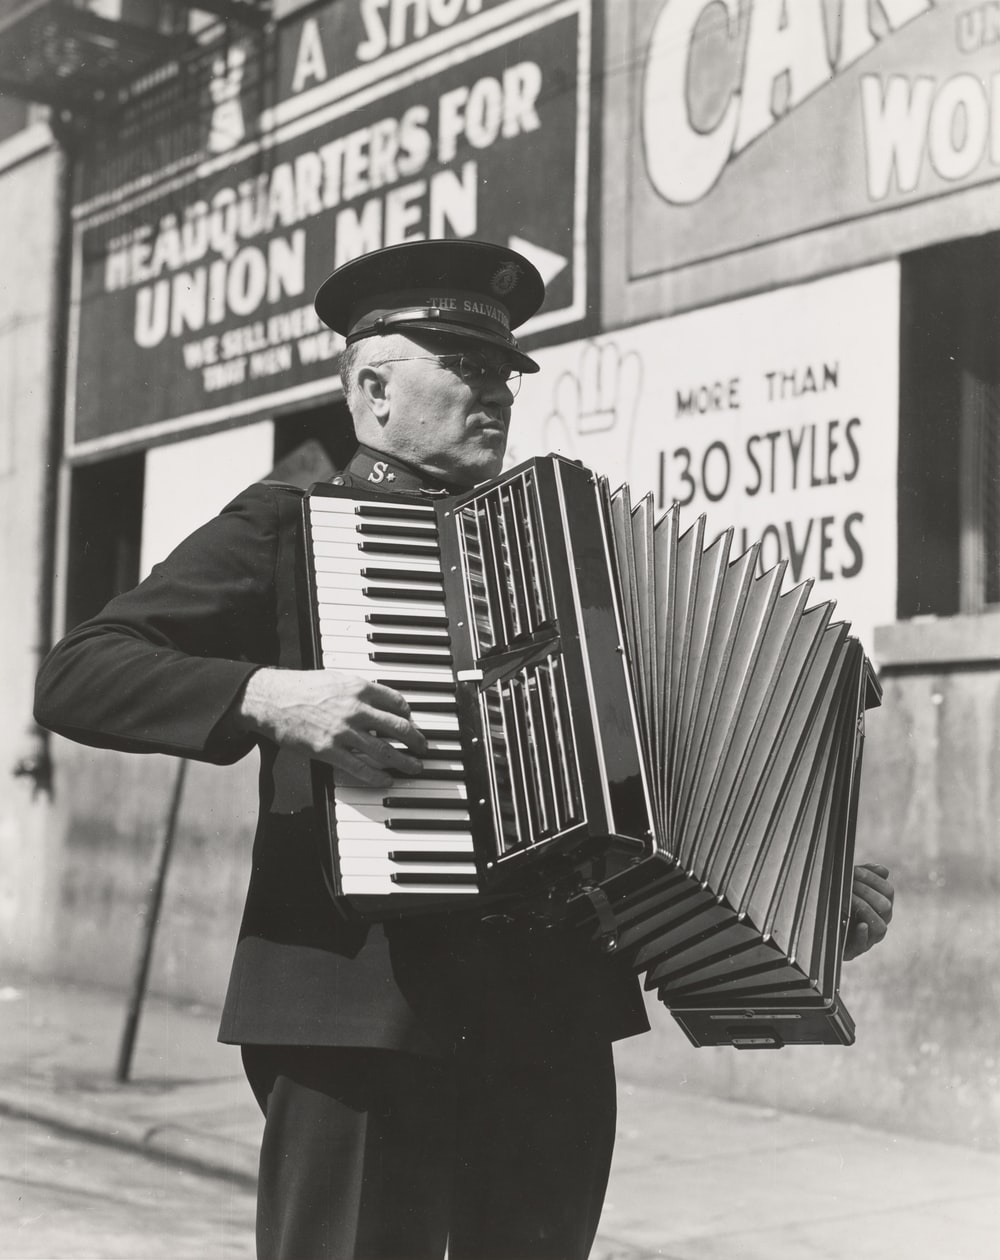 grayscale photo of man playing accordion